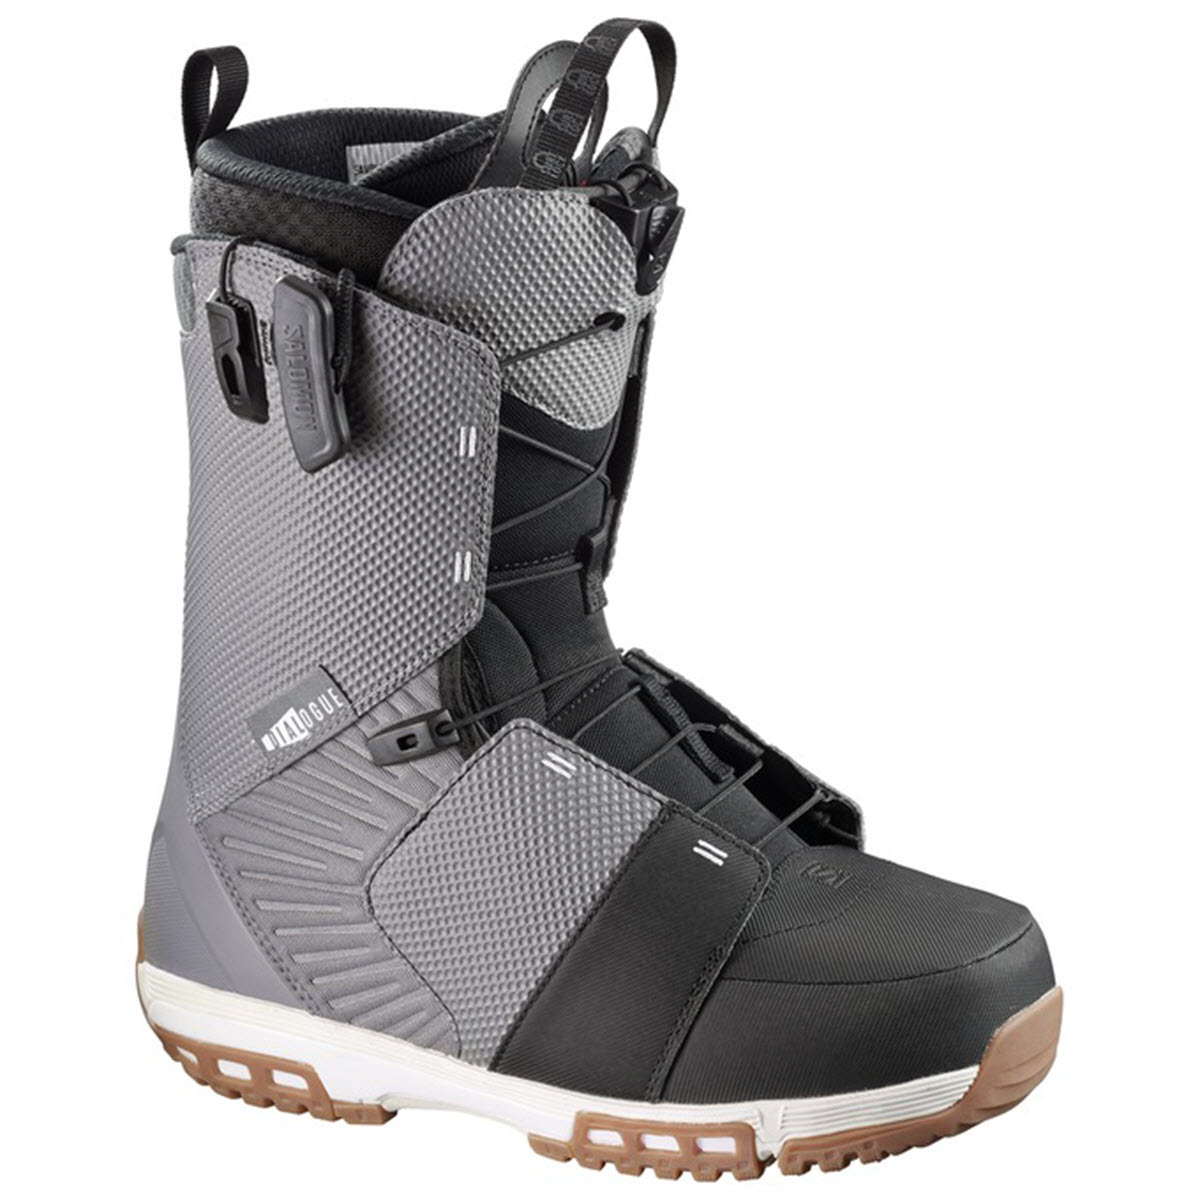 Climbing & Hiking Boots|Snowboard Boots Salomon Dialogue Speed Lace Snowboard Boots 2017 Detroit Black White UK 12.5